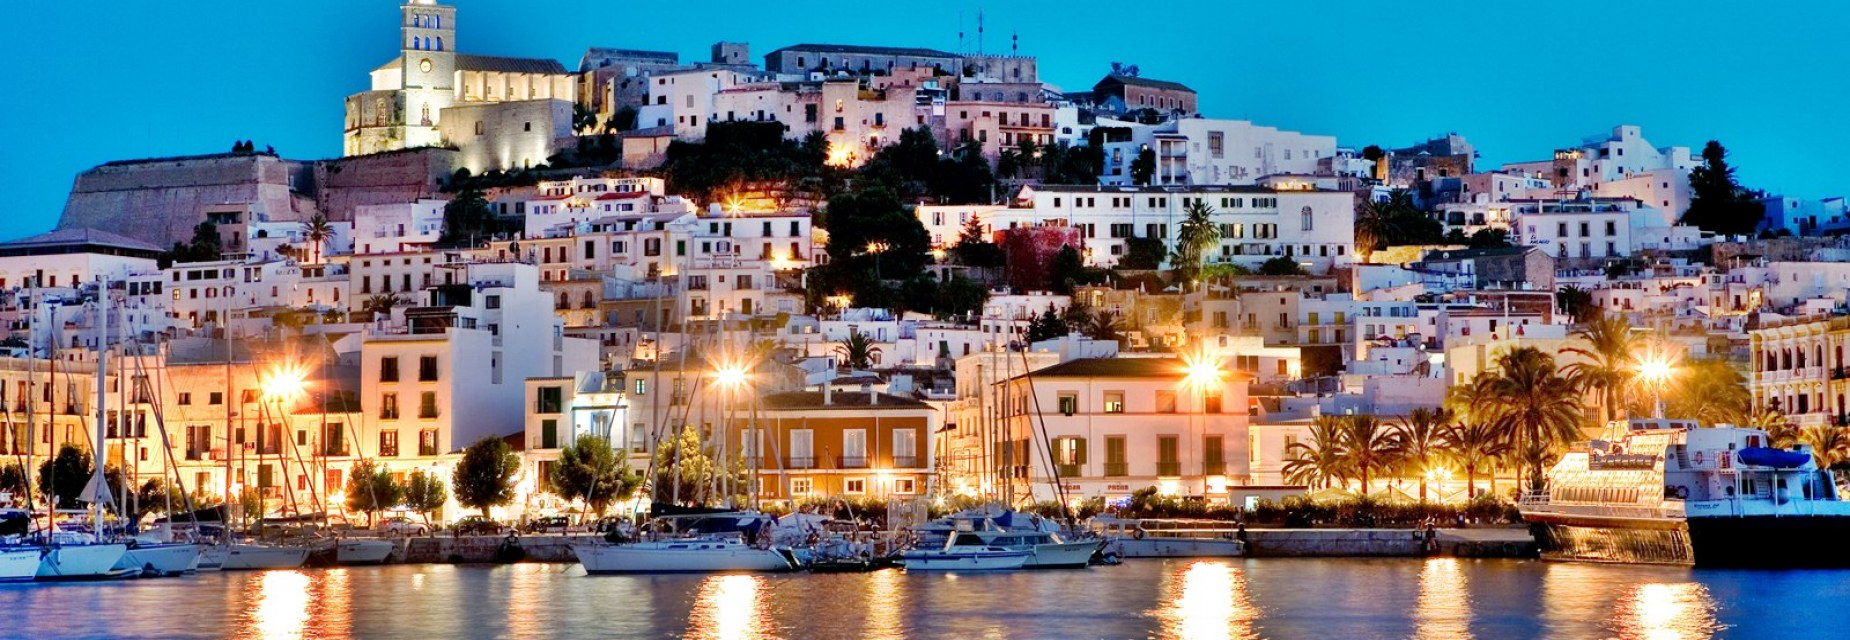 lets behold the beauty of Ibiza island in Spain     MOBILE TRAVEL SITE Ibiza  Catalan  Eivissa  is one of the Balearic islands  an archipelago of  Spain in the Mediterranean Sea  It s well known for the lively nightlife in  Ibiza